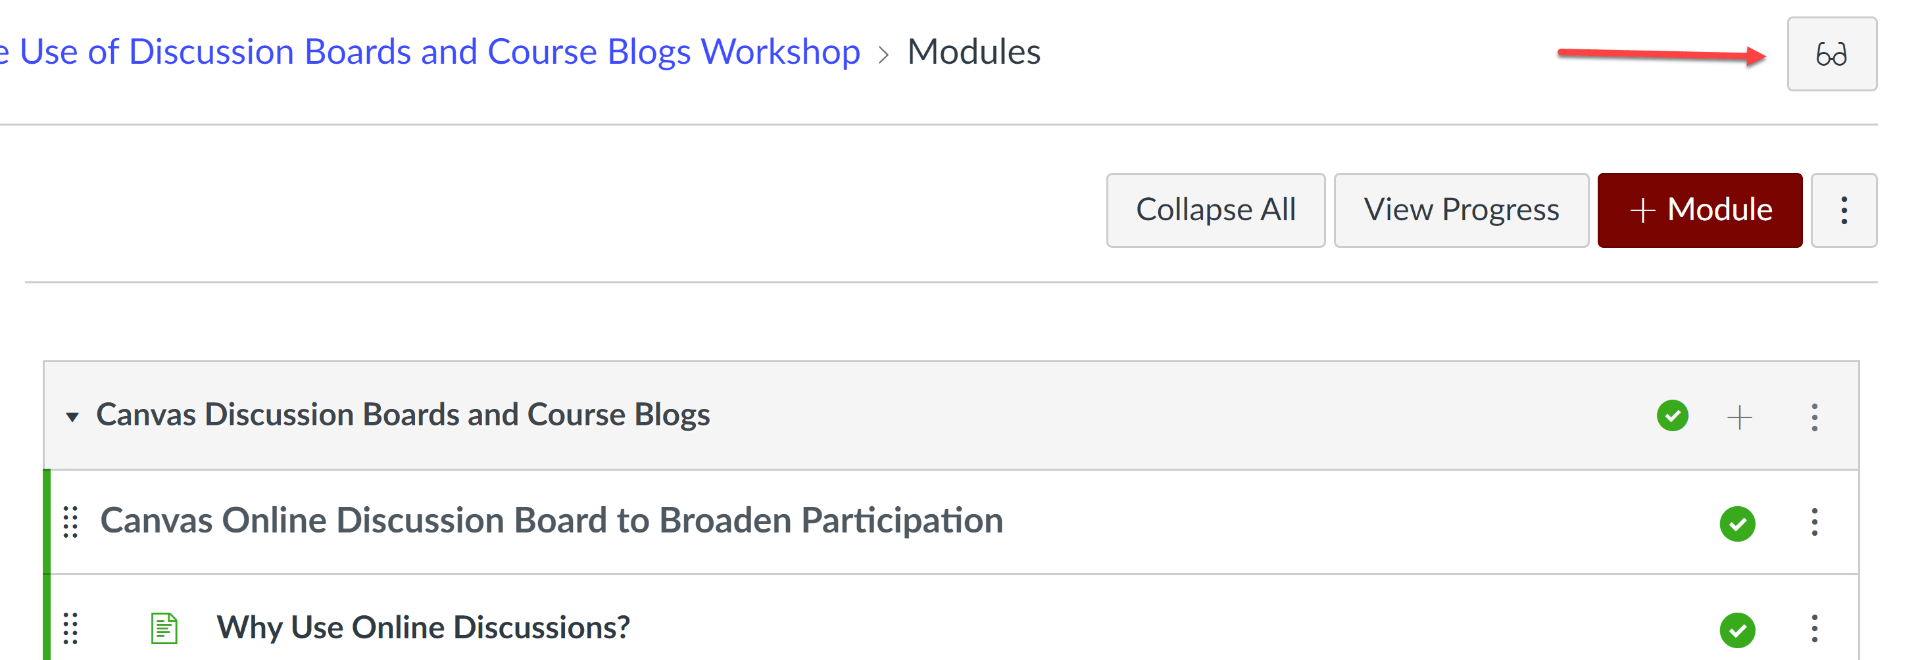 Modules Page with Student View Button Indicated